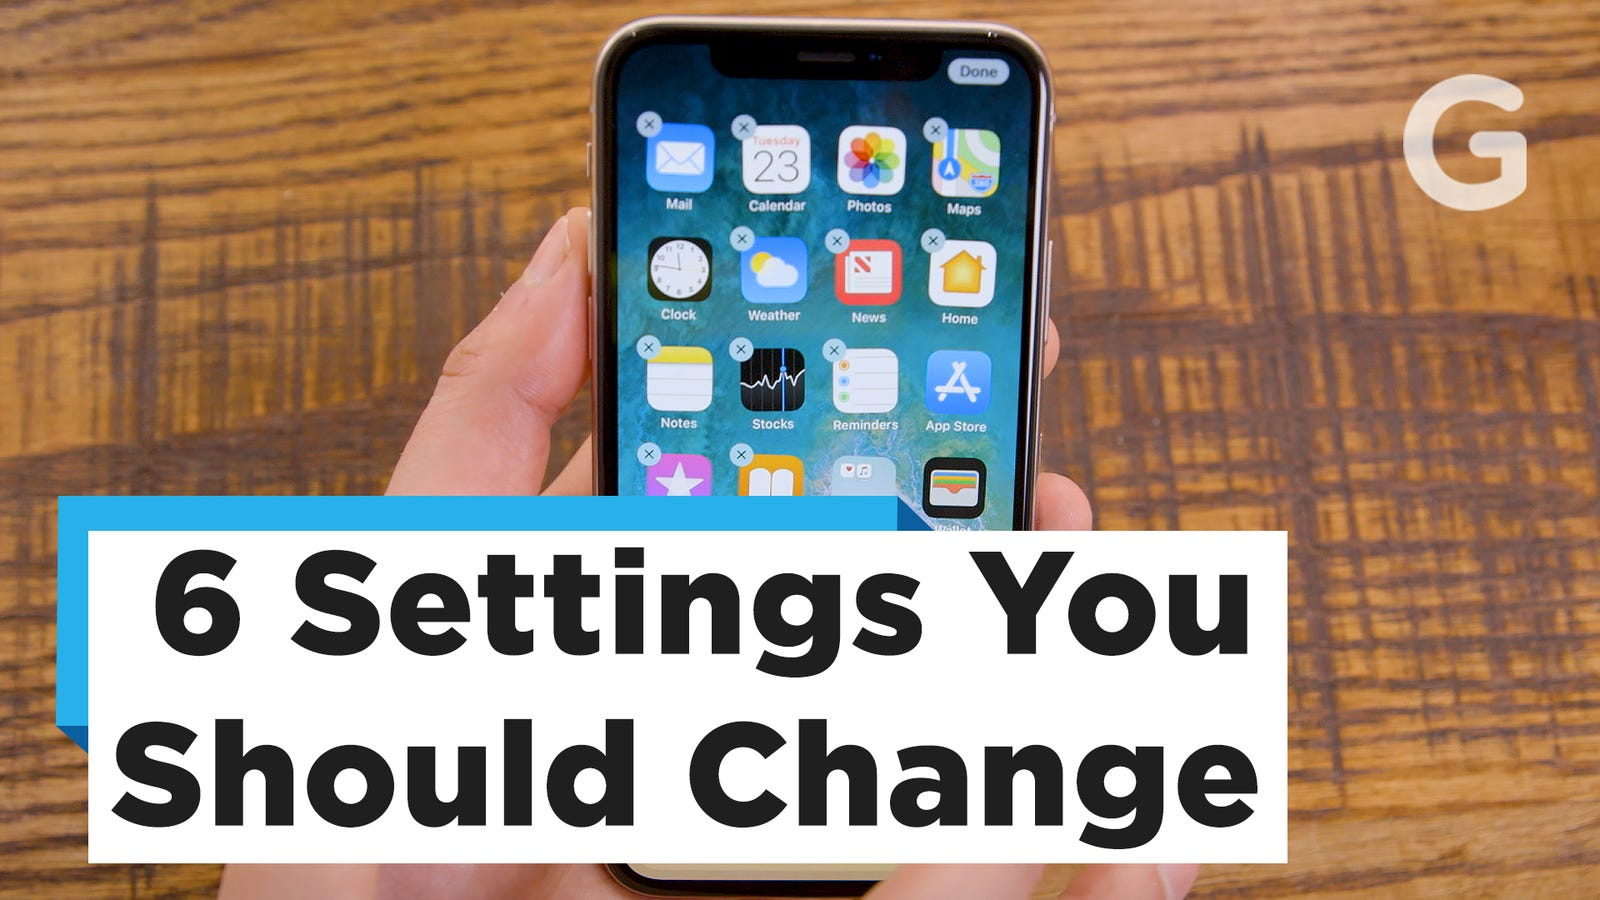 The 6 Settings to Change as Soon as You've Set Up Your New Phone